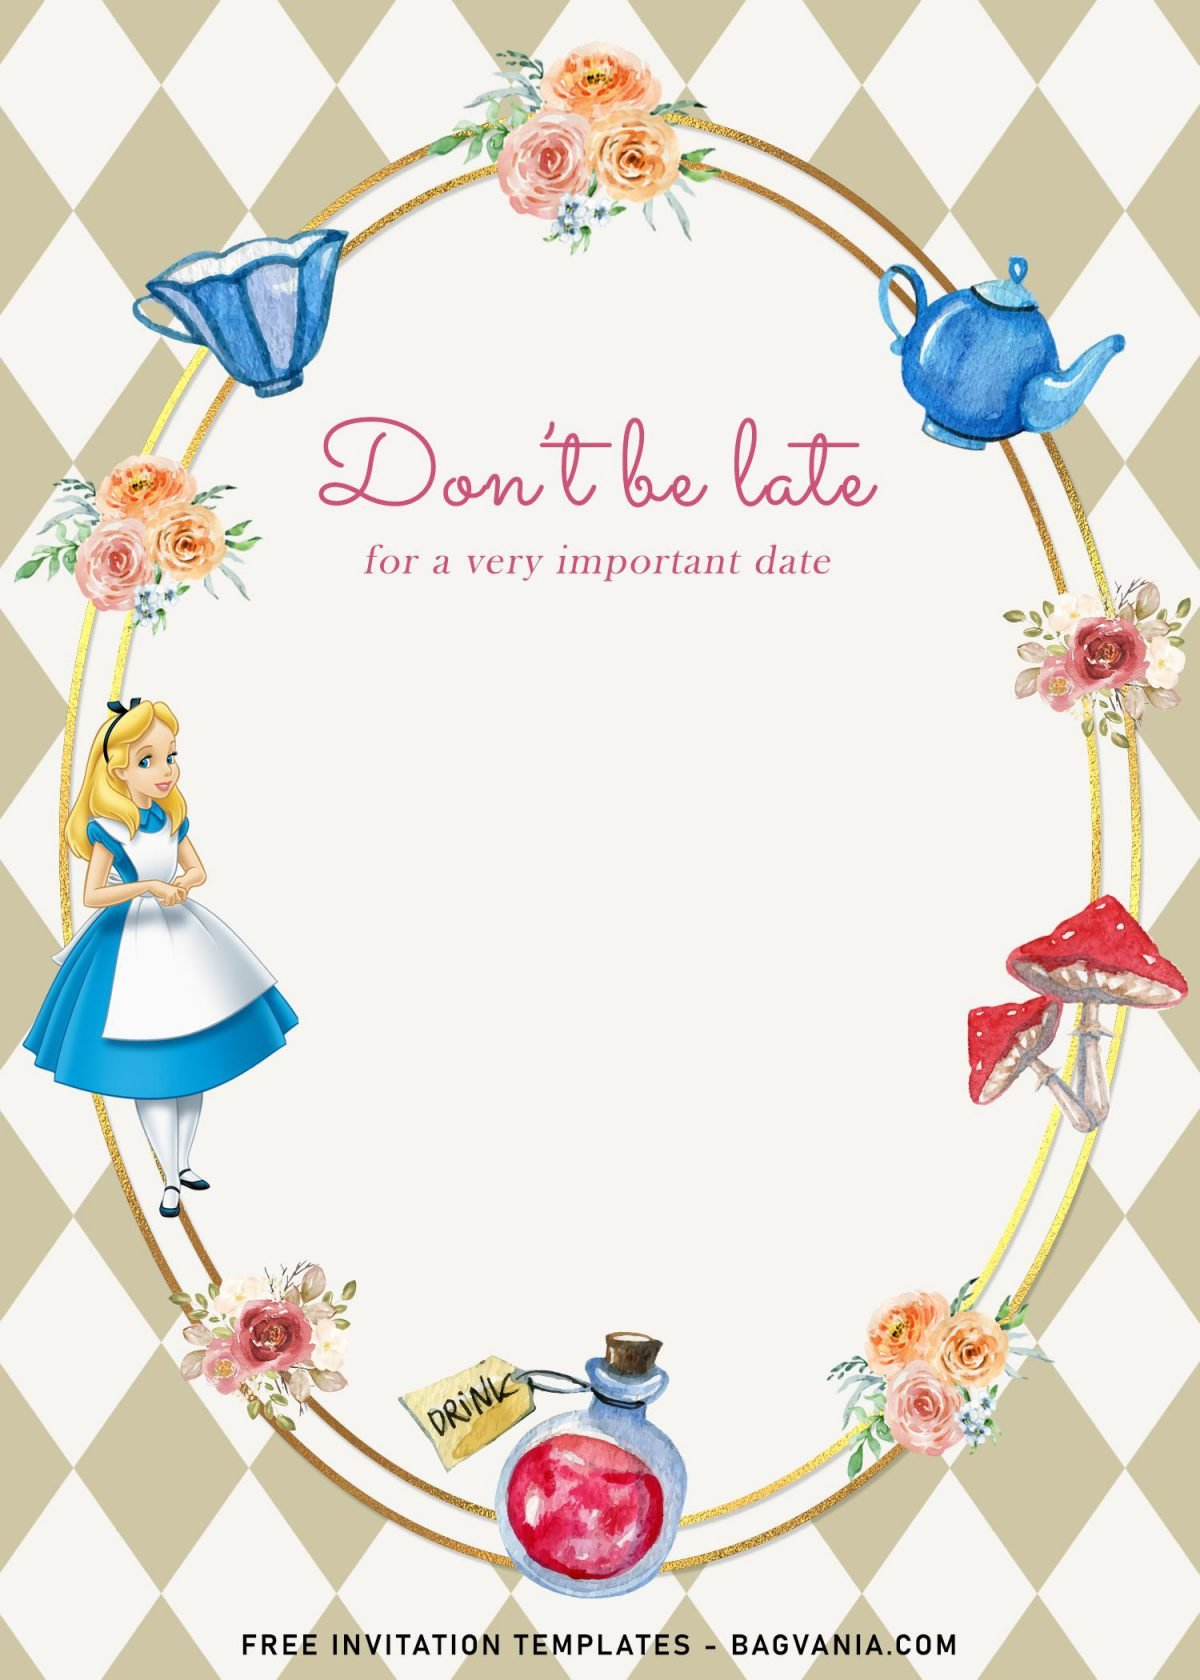 8+ Vintage Alice In Wonderland Birthday Invitation Templates and has stunning metallic gold frame